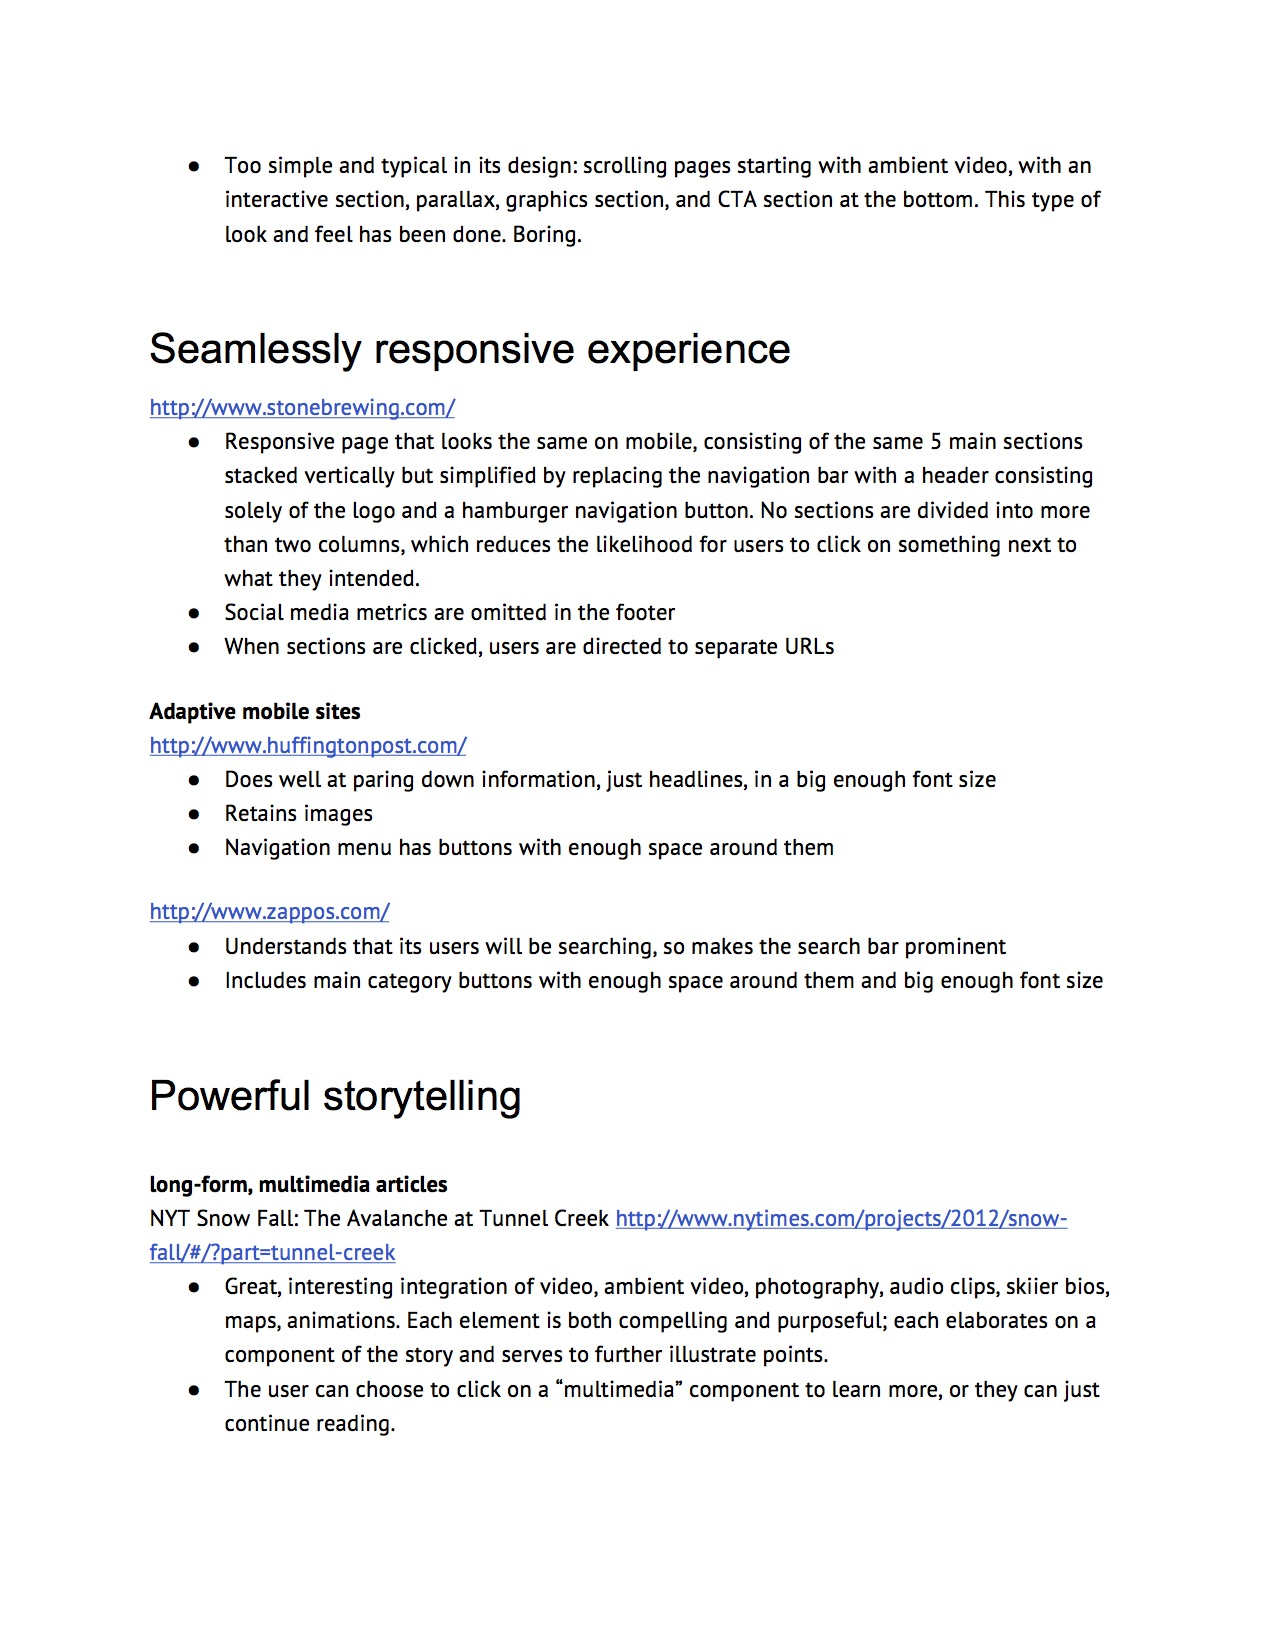 Ideal web experience edited for web4.jpg